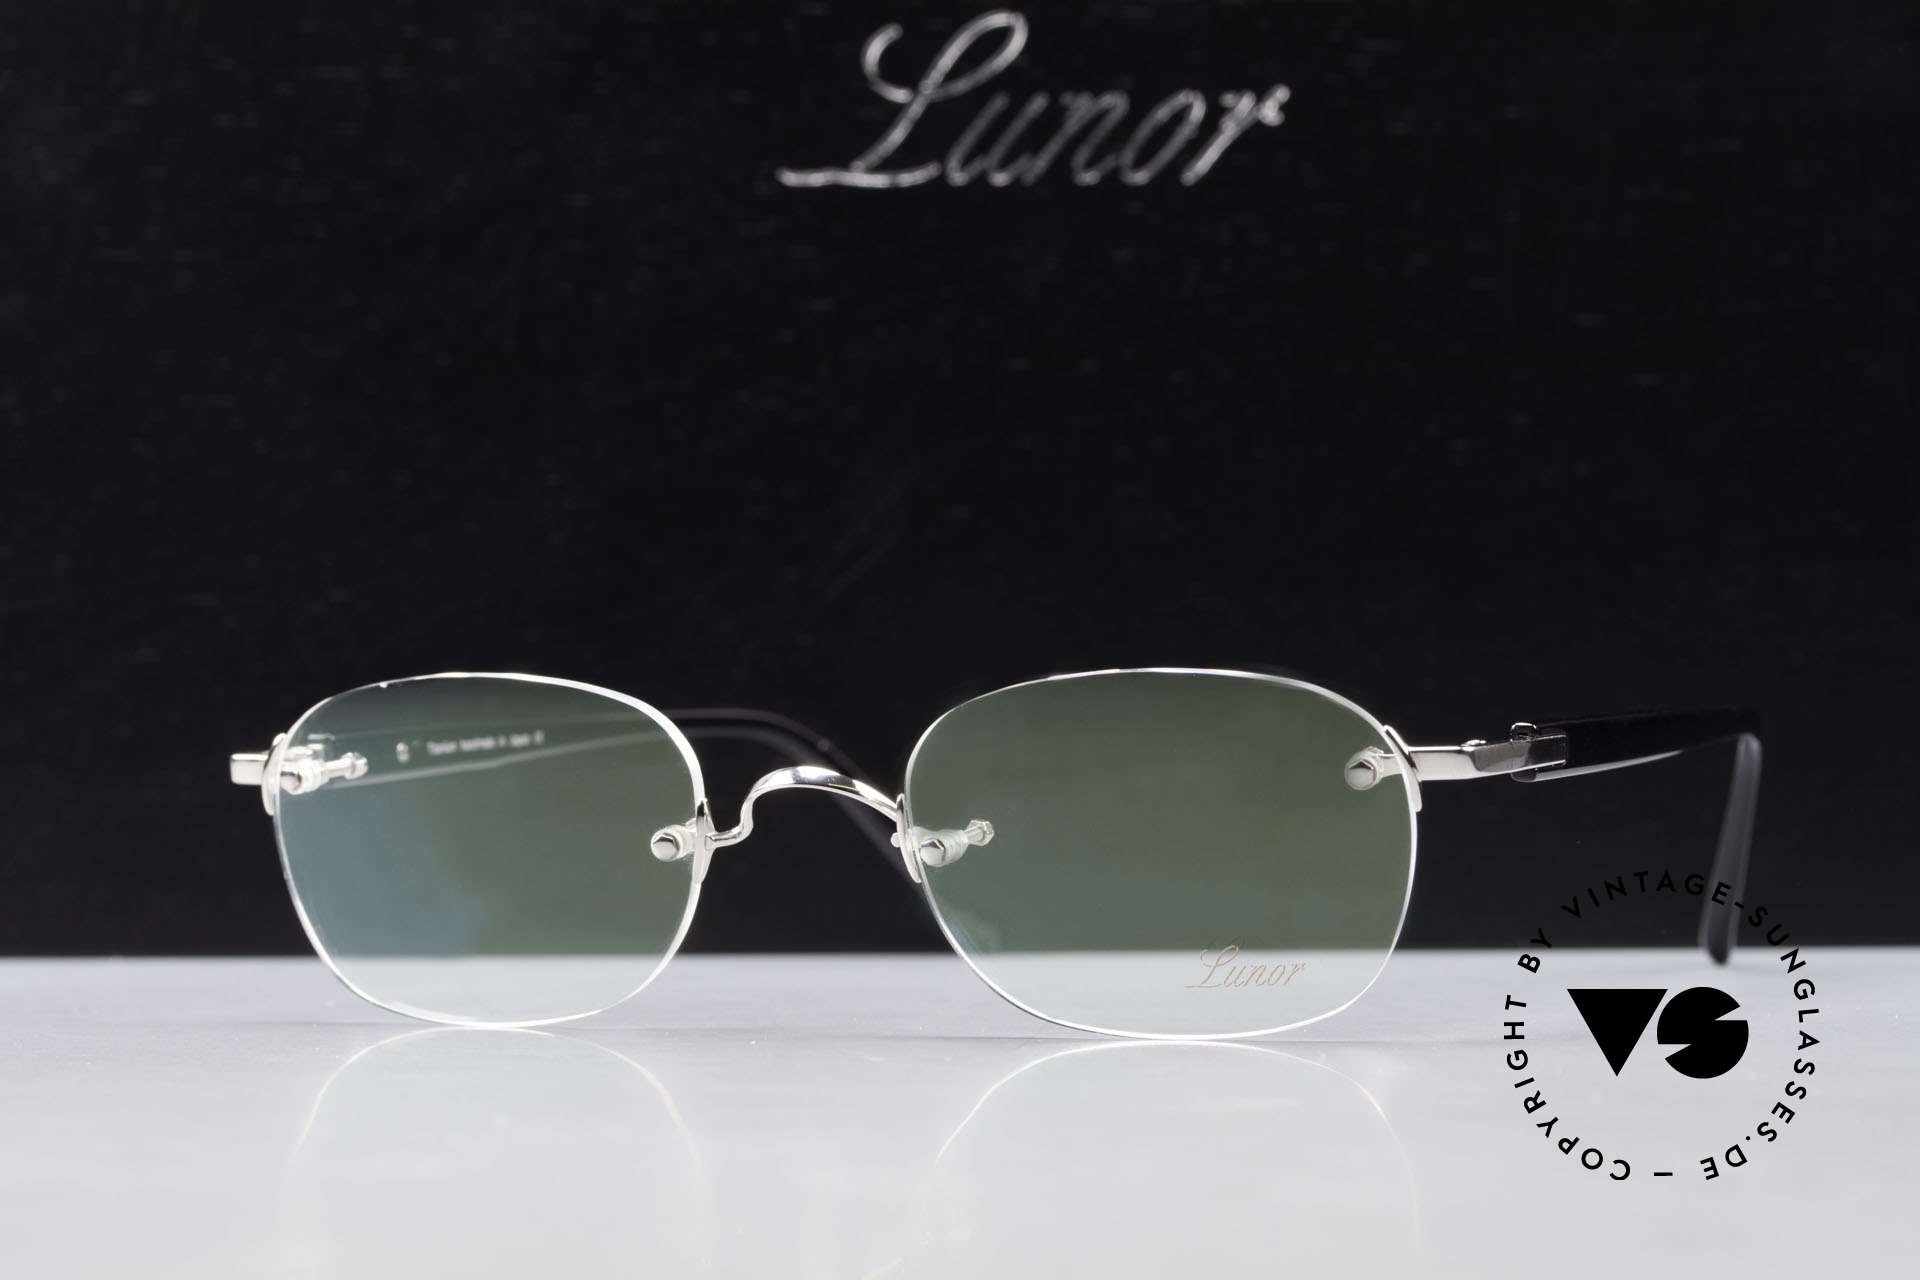 Lunor Classic V Anatomic PP Rimless Frame Platin Plated, Size: medium, Made for Men